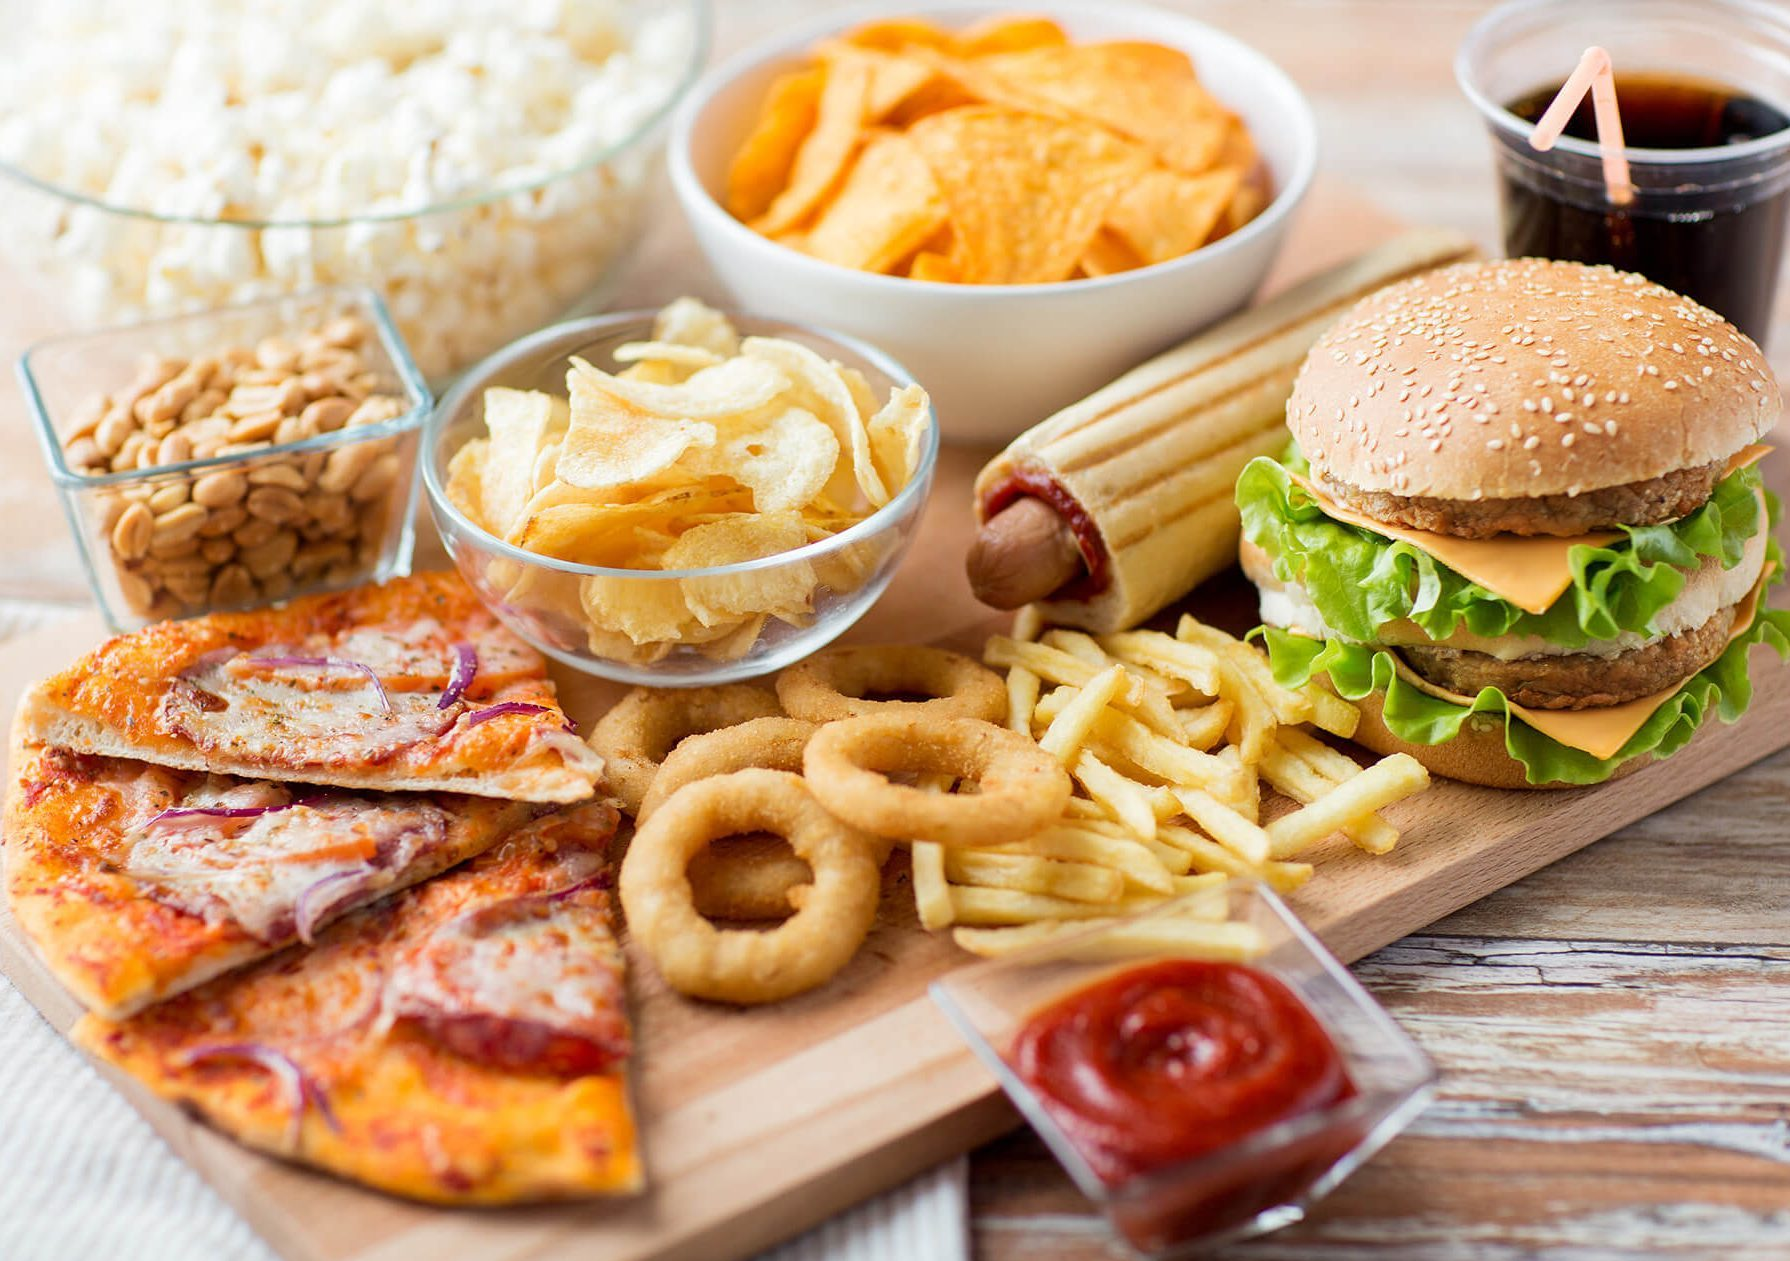 MDM solutions to improve color, taste and MDM meat, solution for poultry MDM (Mechanical Deboned Meat), meat burger recipe, burger / nuggets recipe